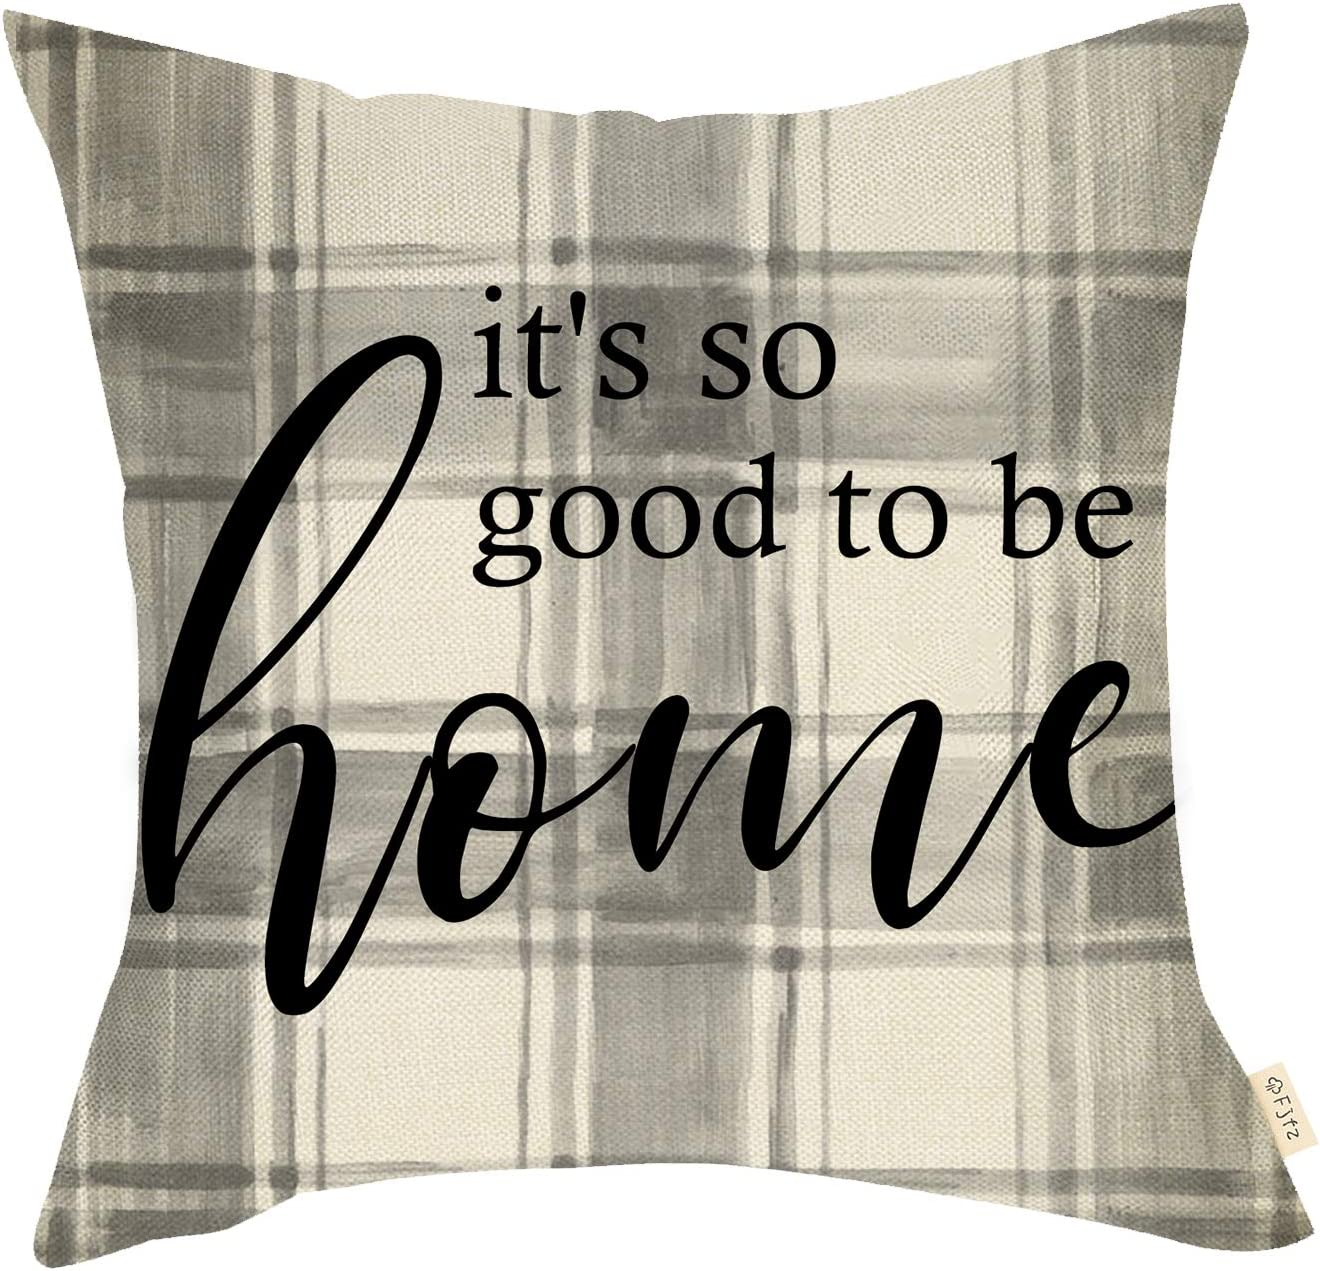 Fjfz Rustic Farmhouse Decorative Throw Pillow Cover It's Good to be Home Black White Buffalo Checker Plaid Sign Country Style Decoration Home Décor Cotton Linen Cushion Case for Sofa Couch 18